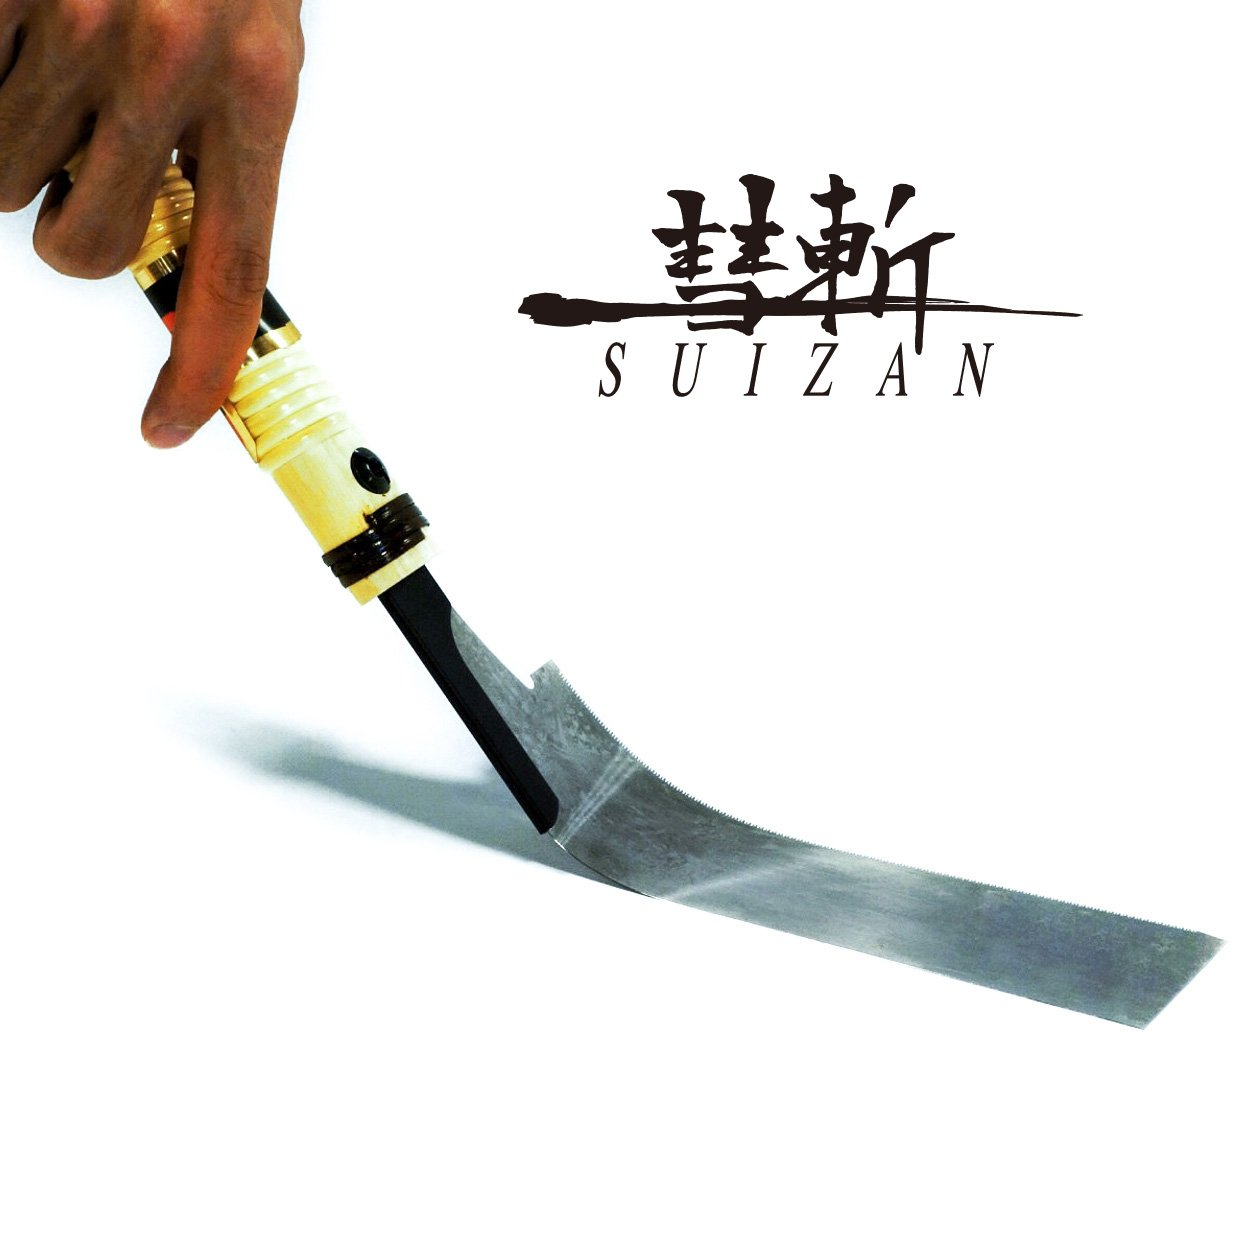 SUIZAN Japanese Hand Saw pull saw 7 inch Flush Cut saw trim saw for Woodworking